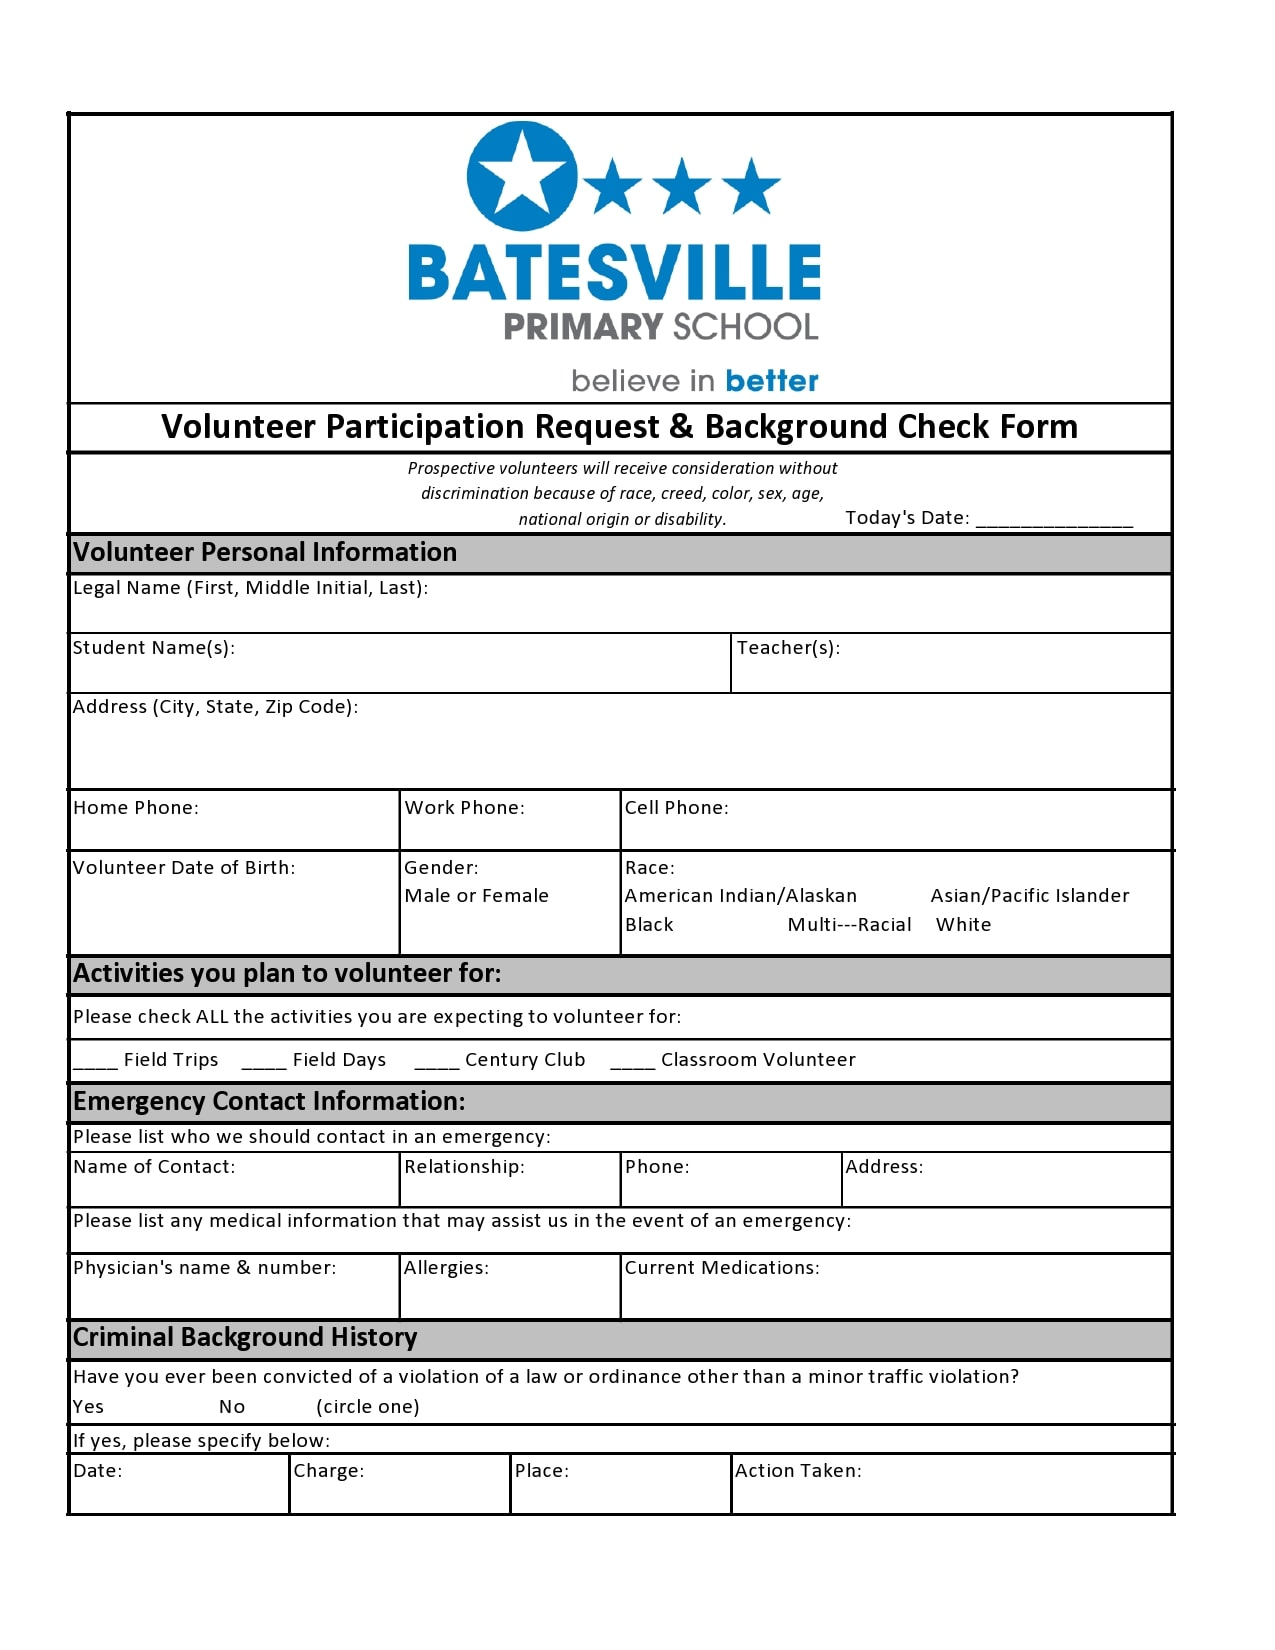 background check form 01